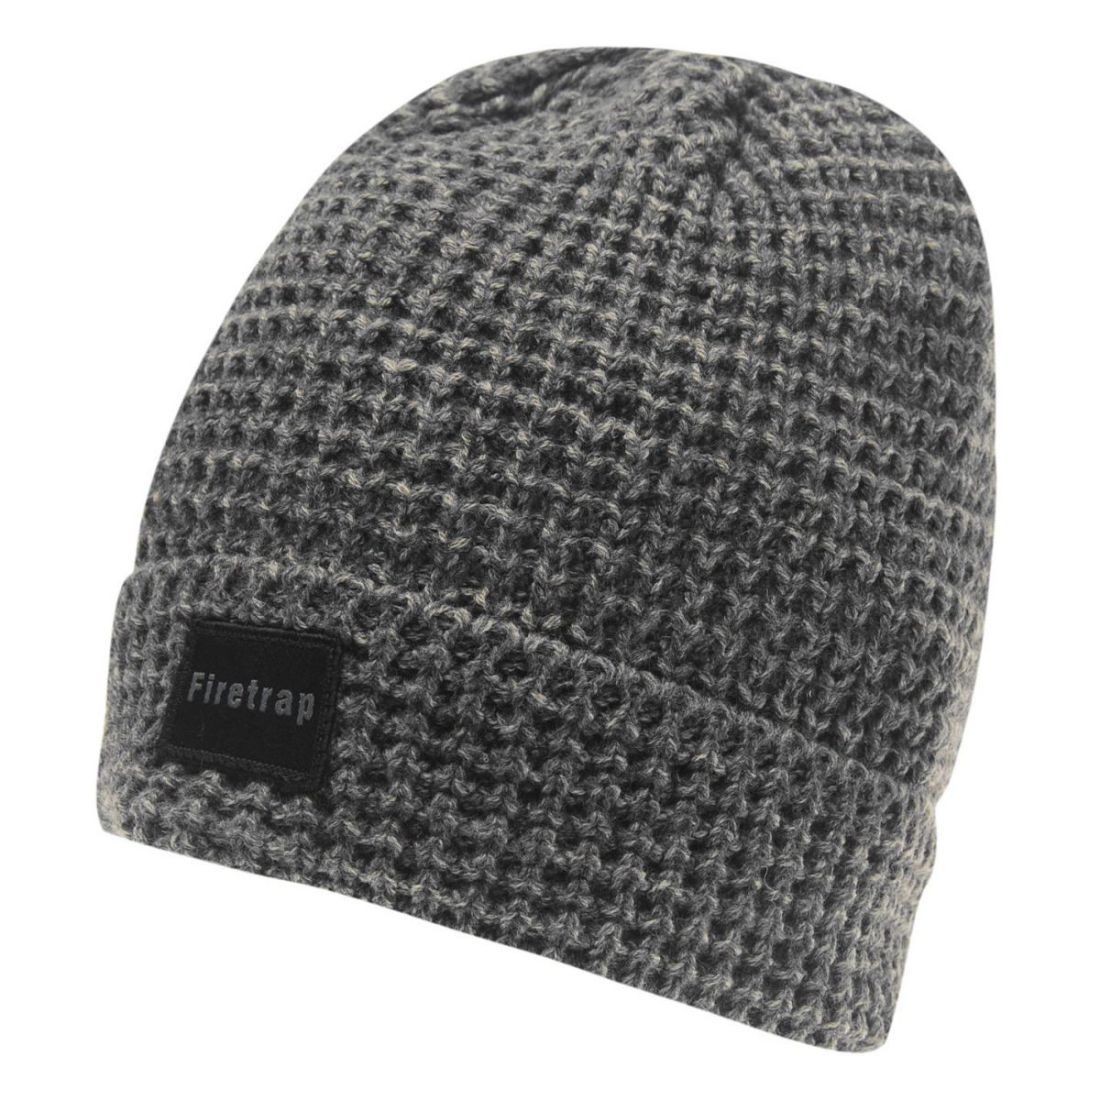 Details about Mens Firetrap Cable Knit Beanie Hat Winter New 67823402b64